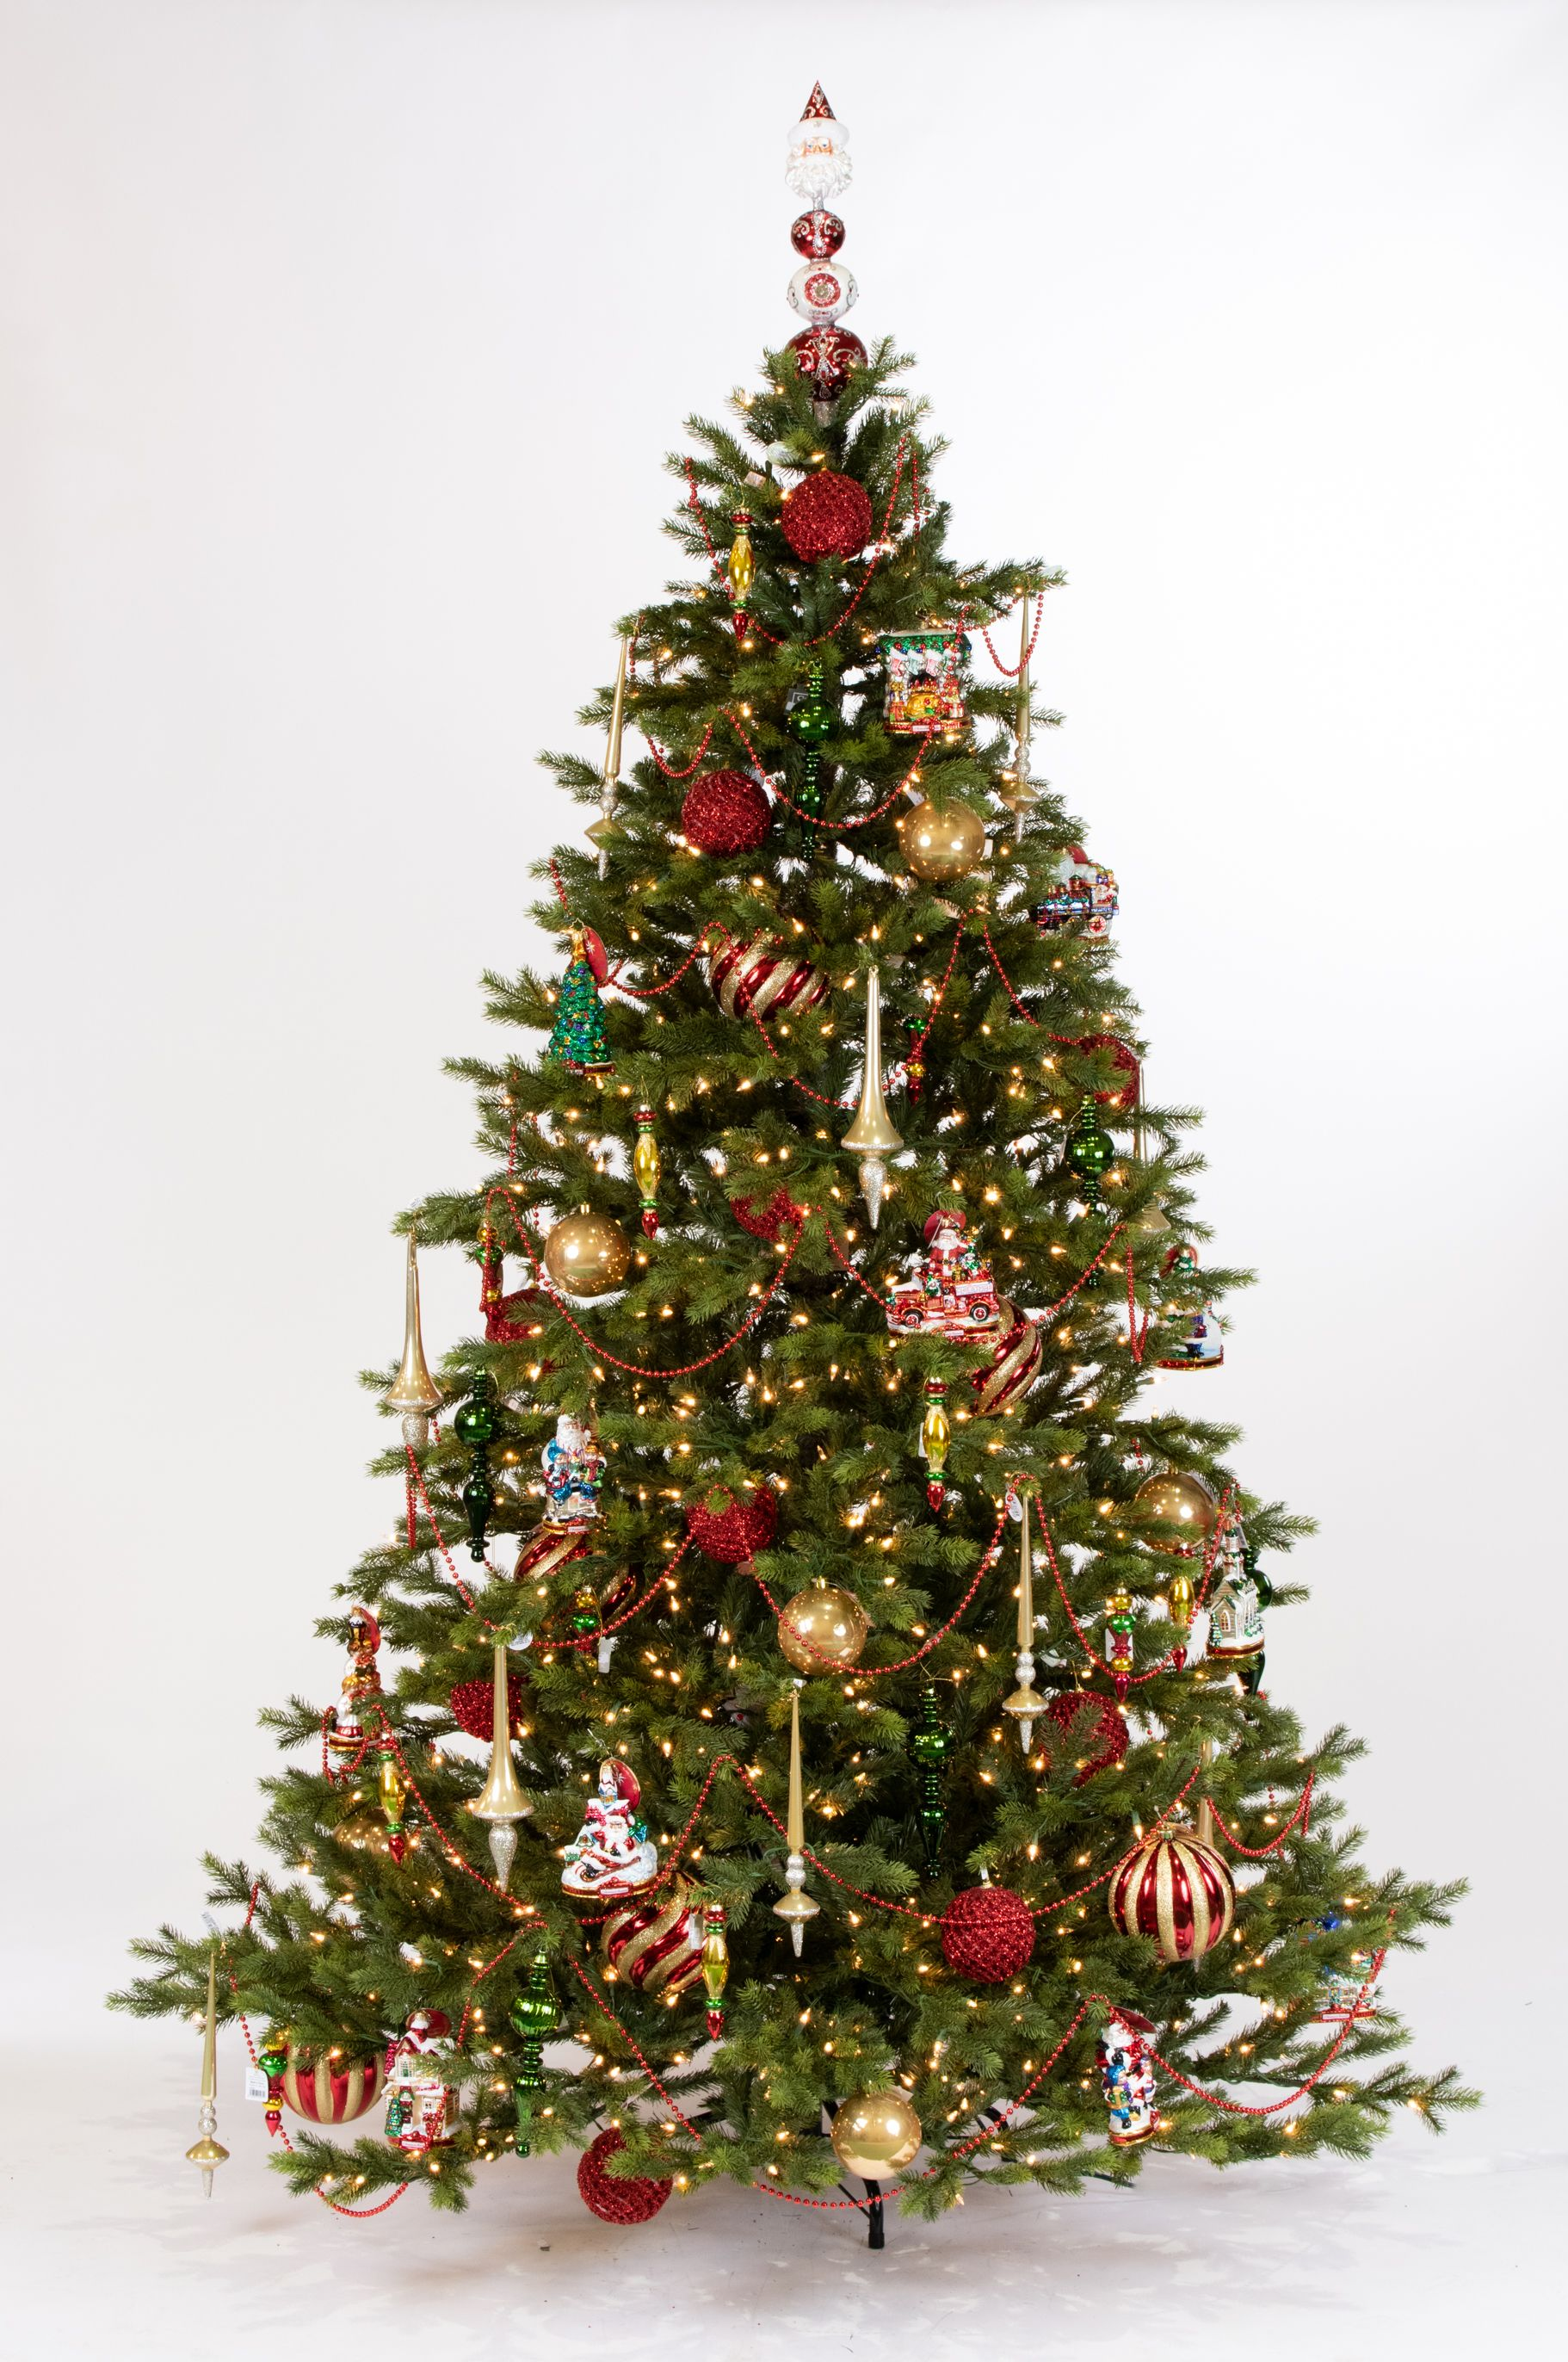 Treetime's Wexford Spruce is an artificial Christmas tree